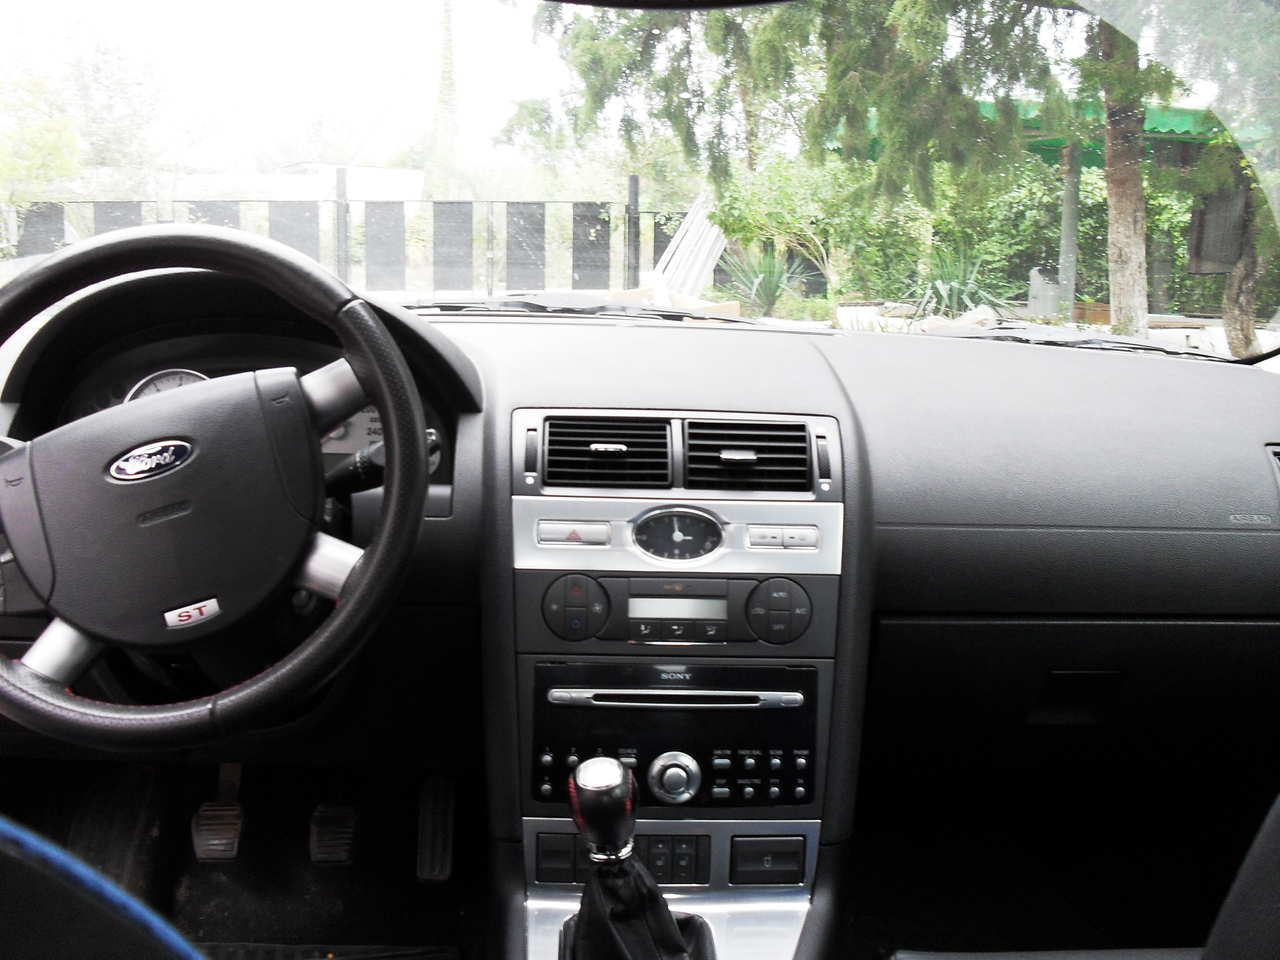 2005 ford mondeo for sale 3000cc gasoline ff manual for sale. Black Bedroom Furniture Sets. Home Design Ideas